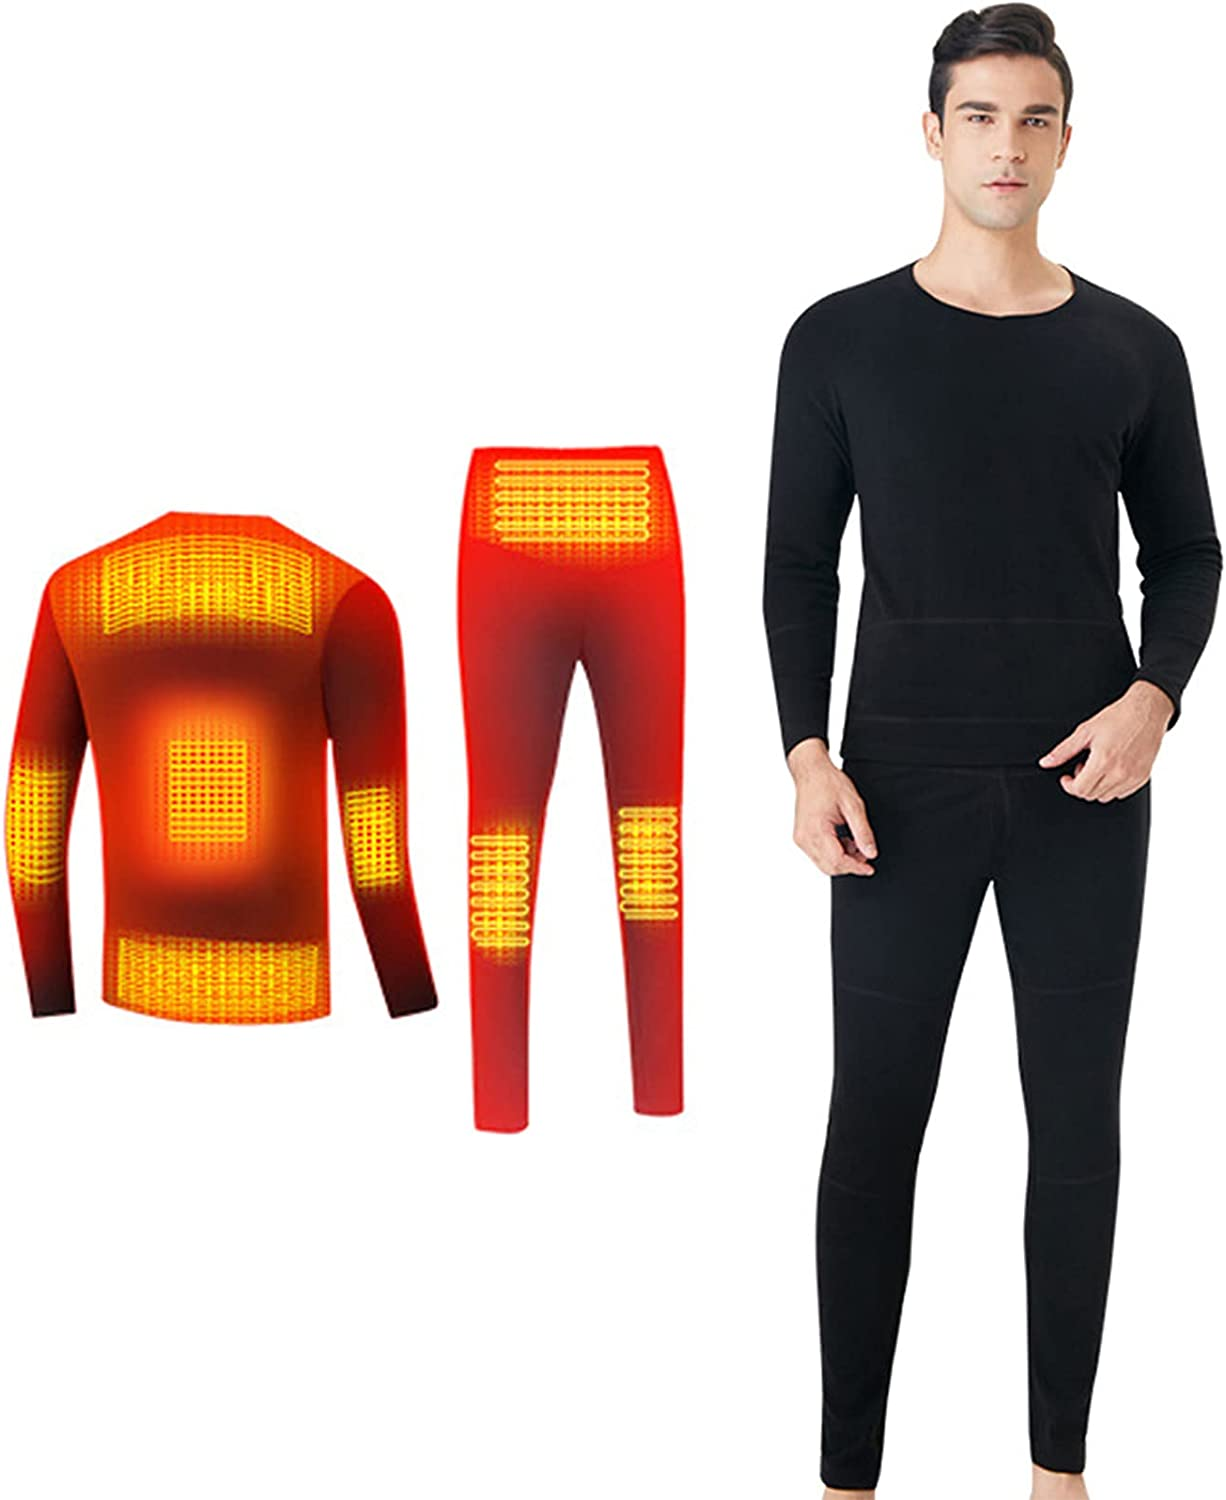 Winter Heating Underwear Set Thermal Tops Pants 8-Zones Intelligent Temperature Control Motorcycle Clothes Trousers